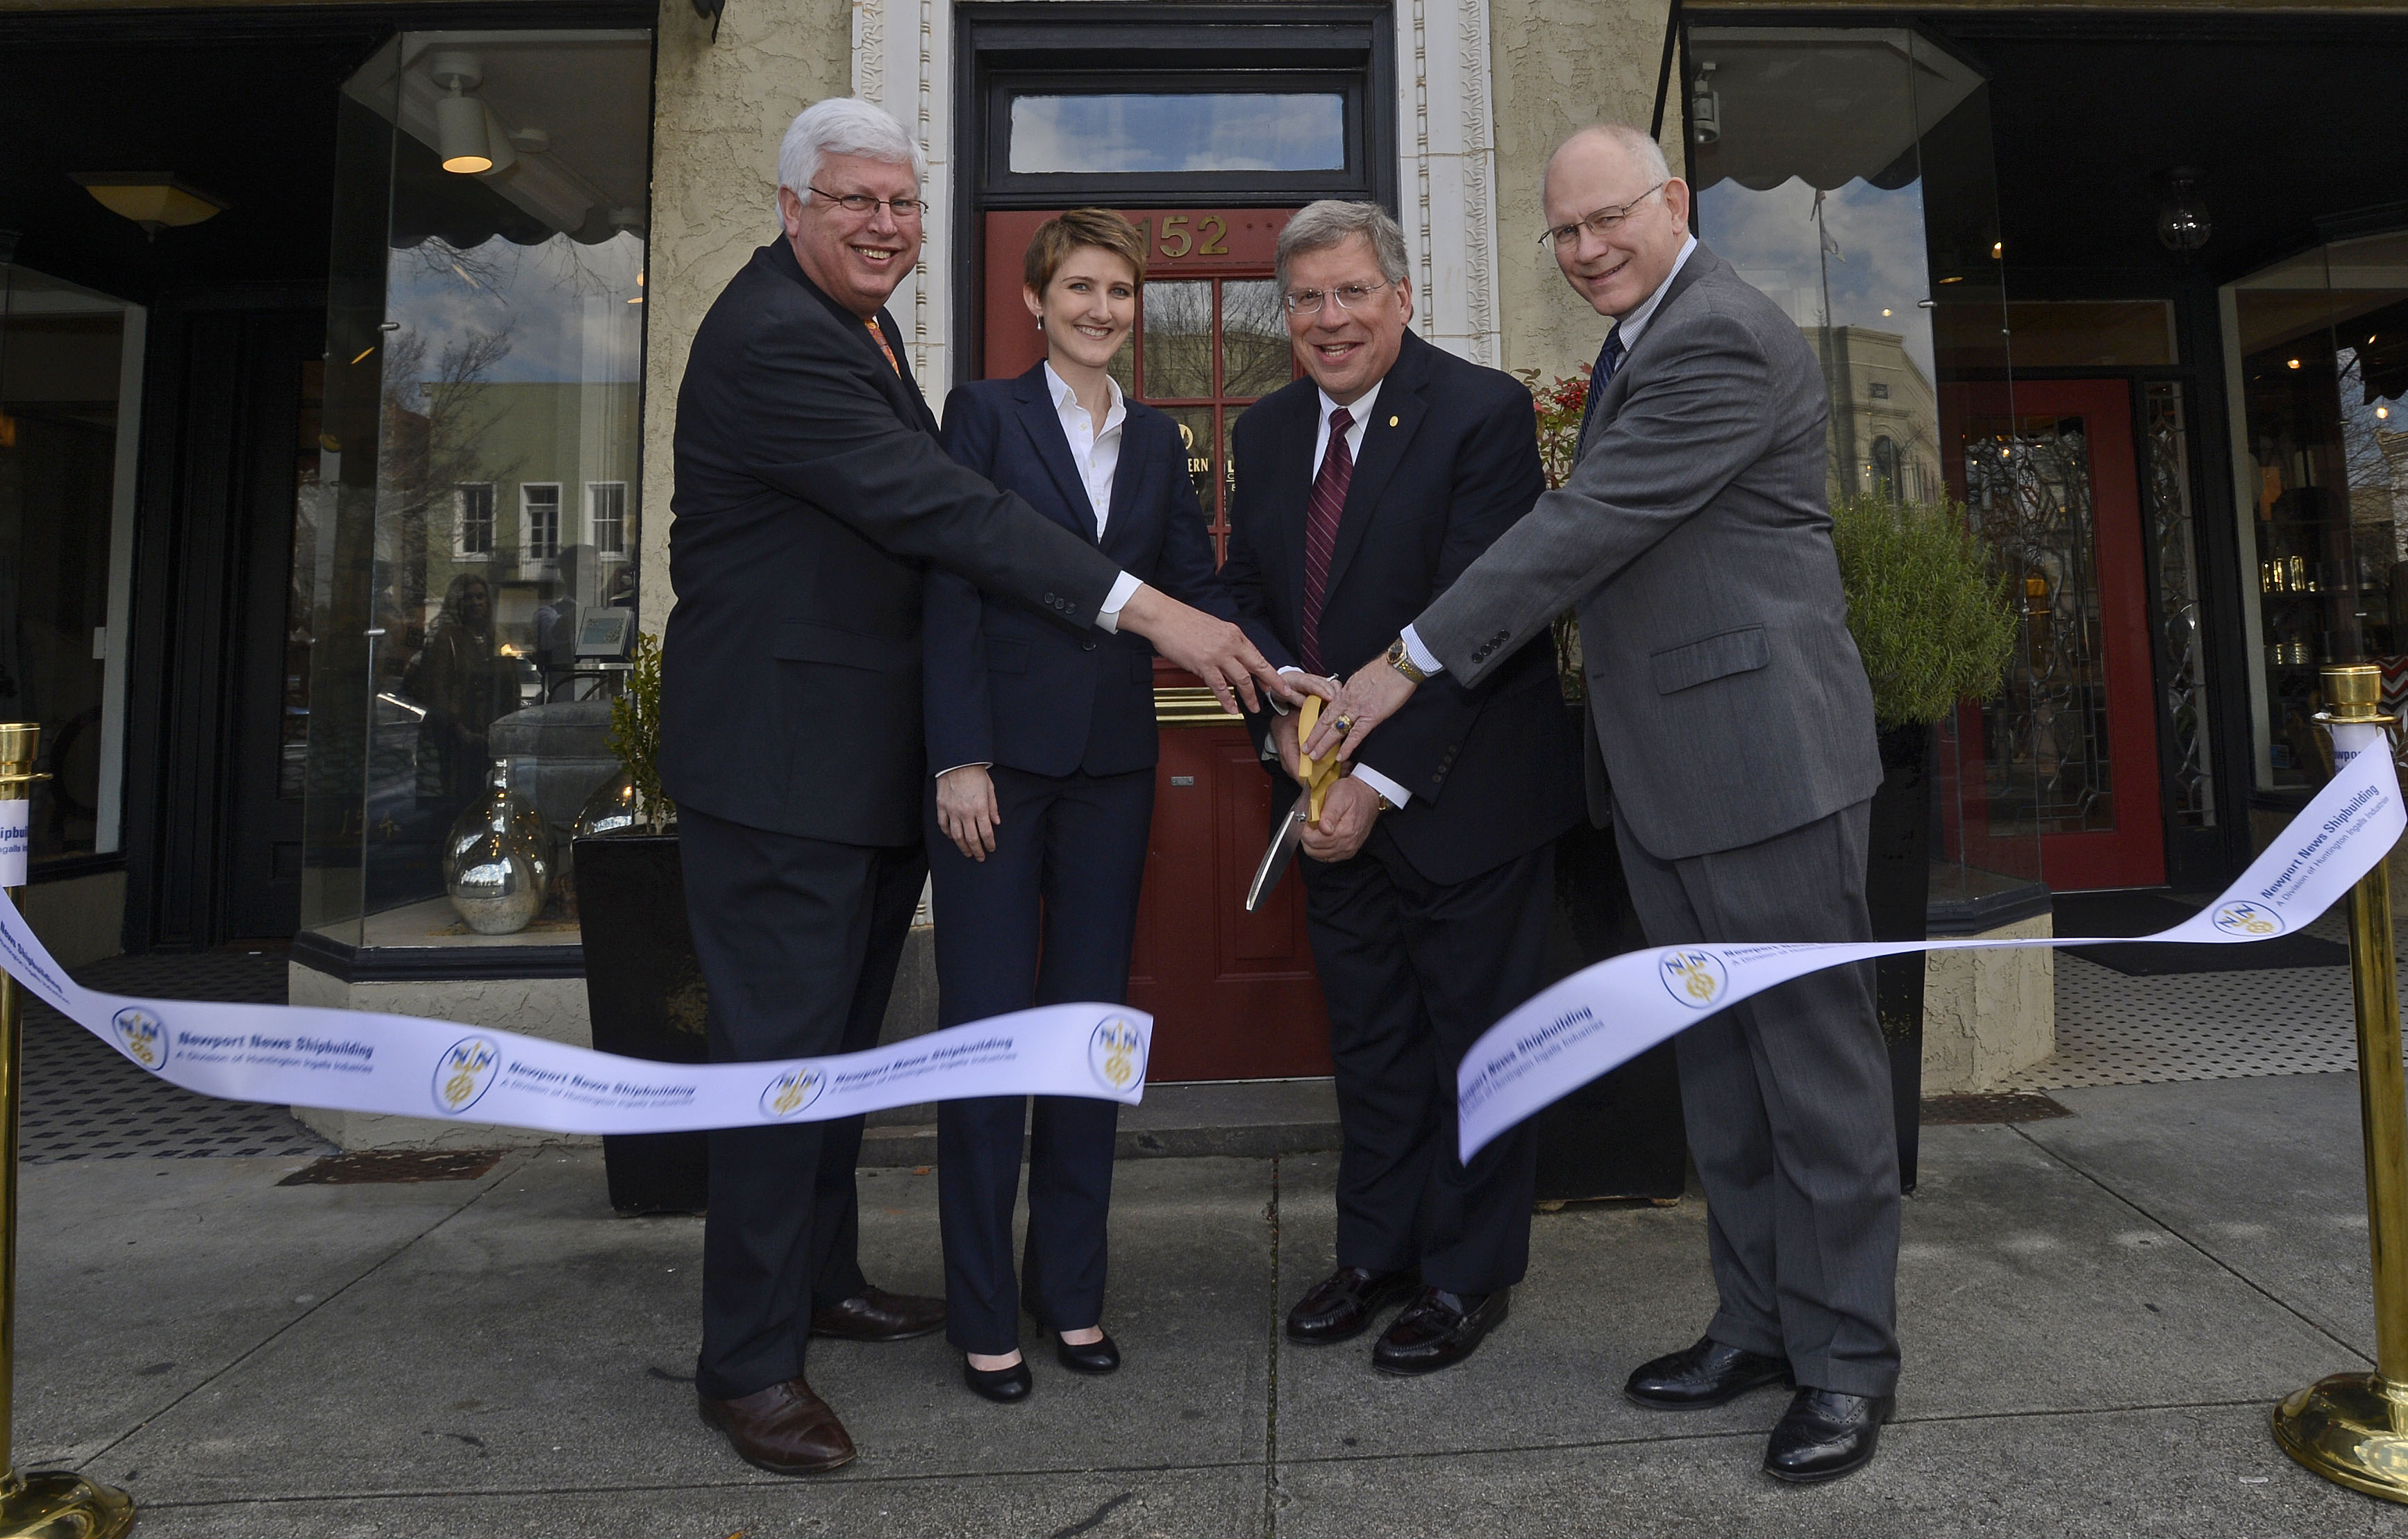 Newport News Shipbuilding Opens Office in Aiken, S.C.